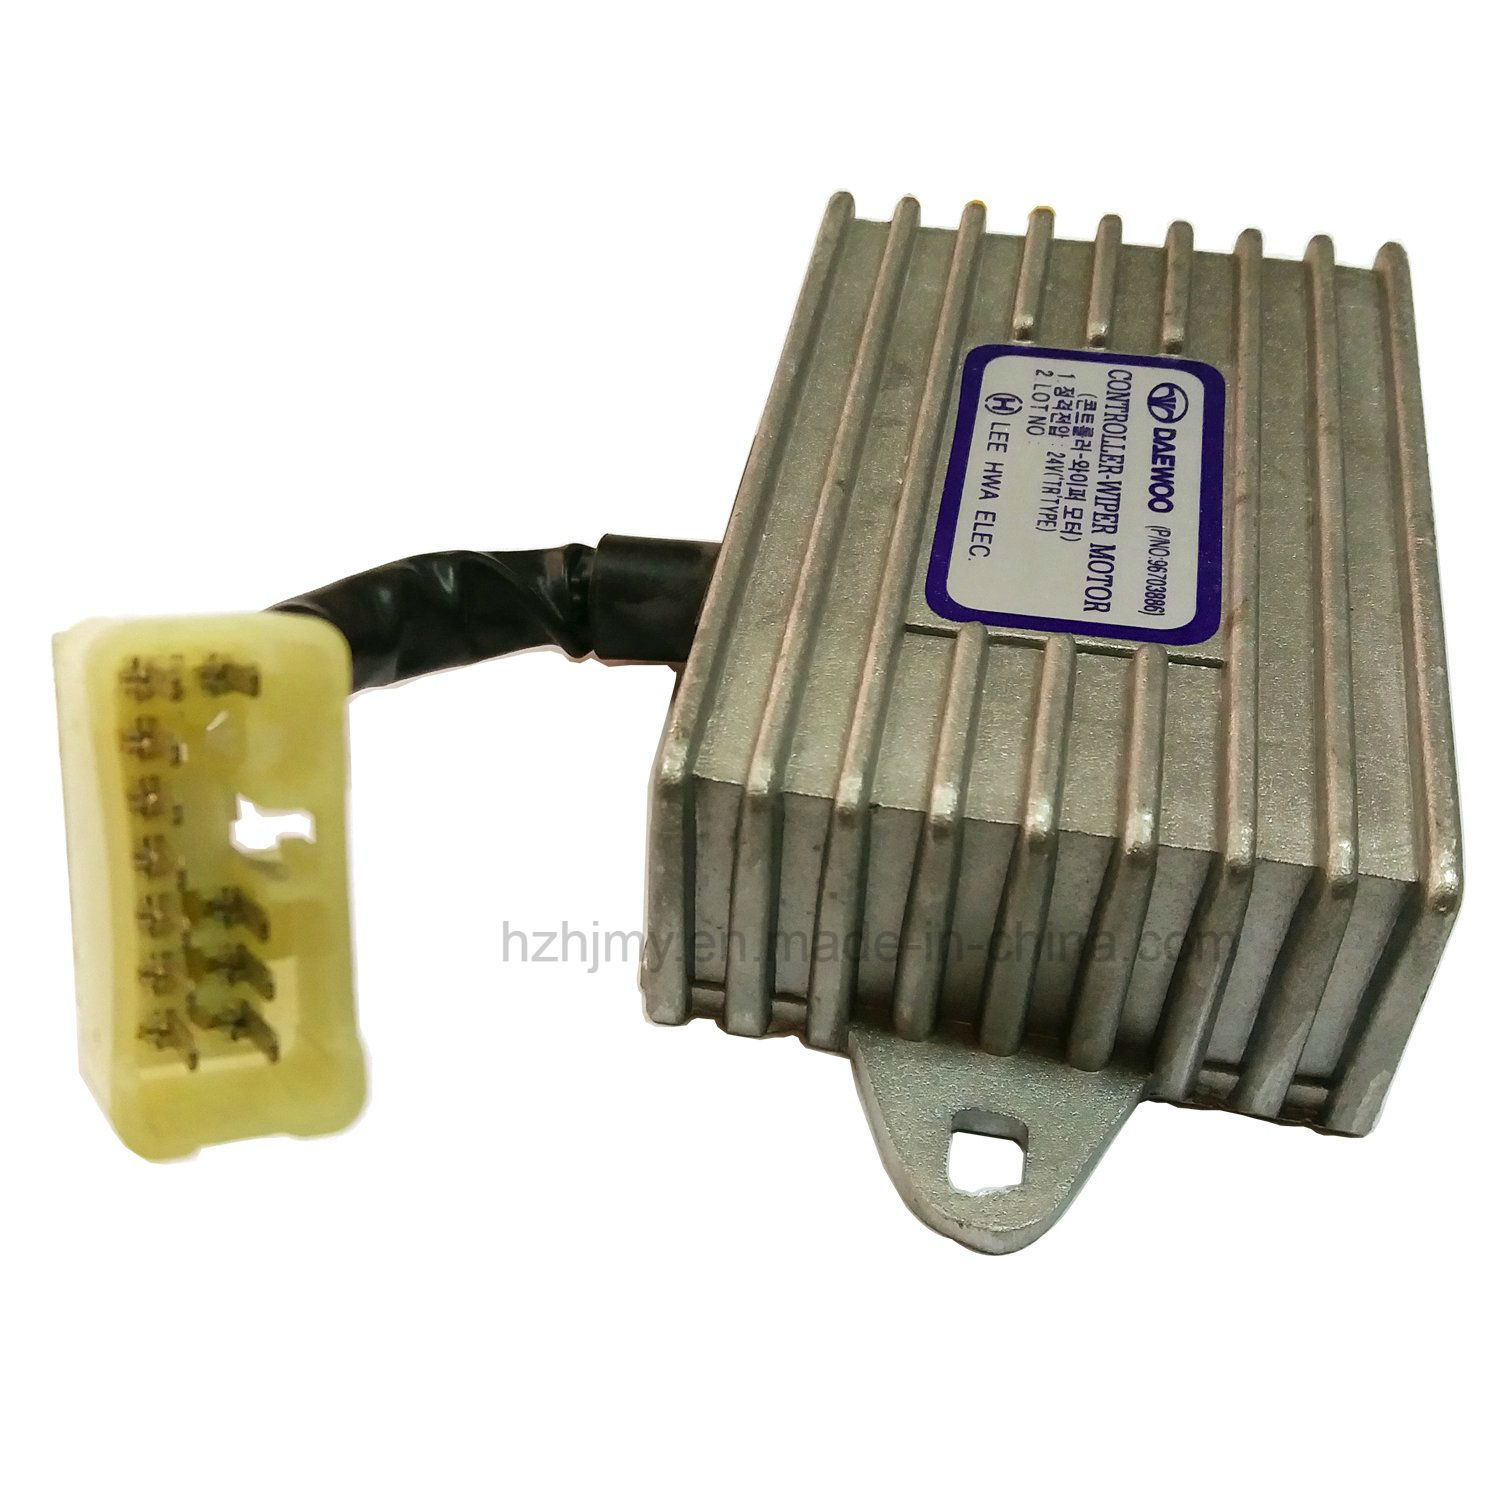 hight resolution of 96703886 wiper motor controller 24v tr type for daewoo bus